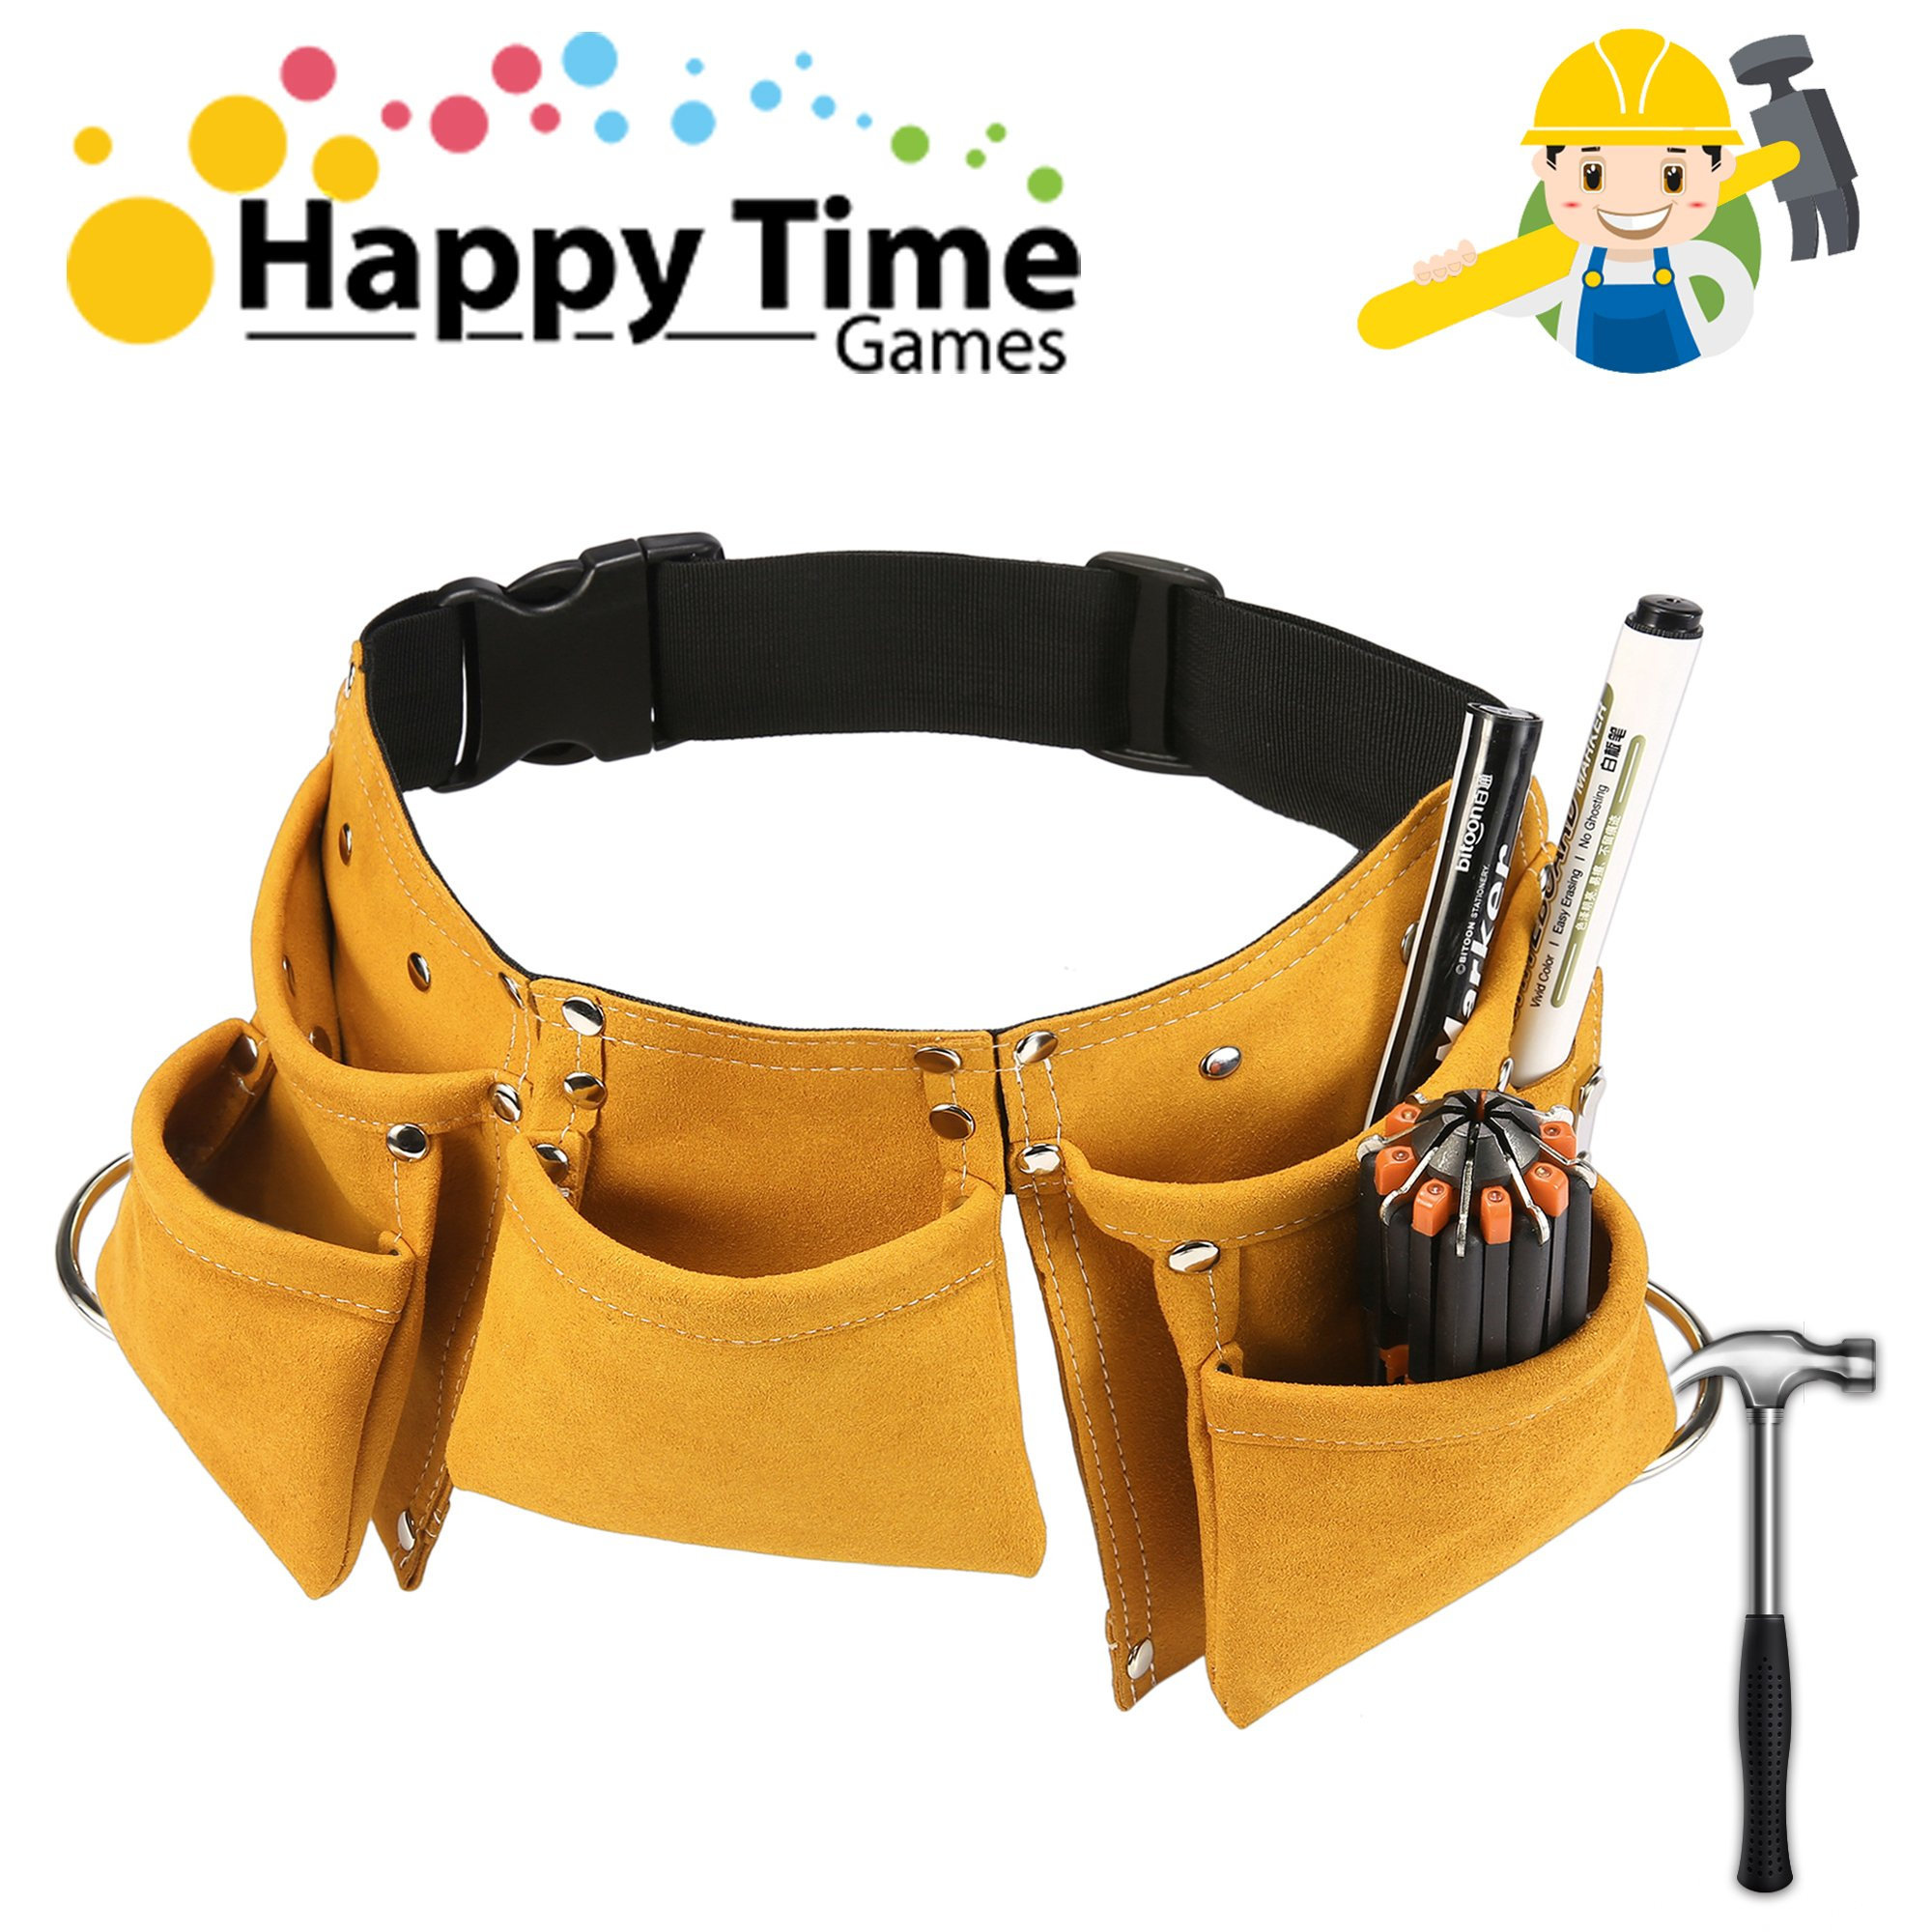 YITOOK Kids Tool Belt Adjustable Children's Carpentry Tool Candy Pouch Heavy Duty Child's Construction Tool Apron for Costumes Dress Up Role Play (Yellow) by YITOOK